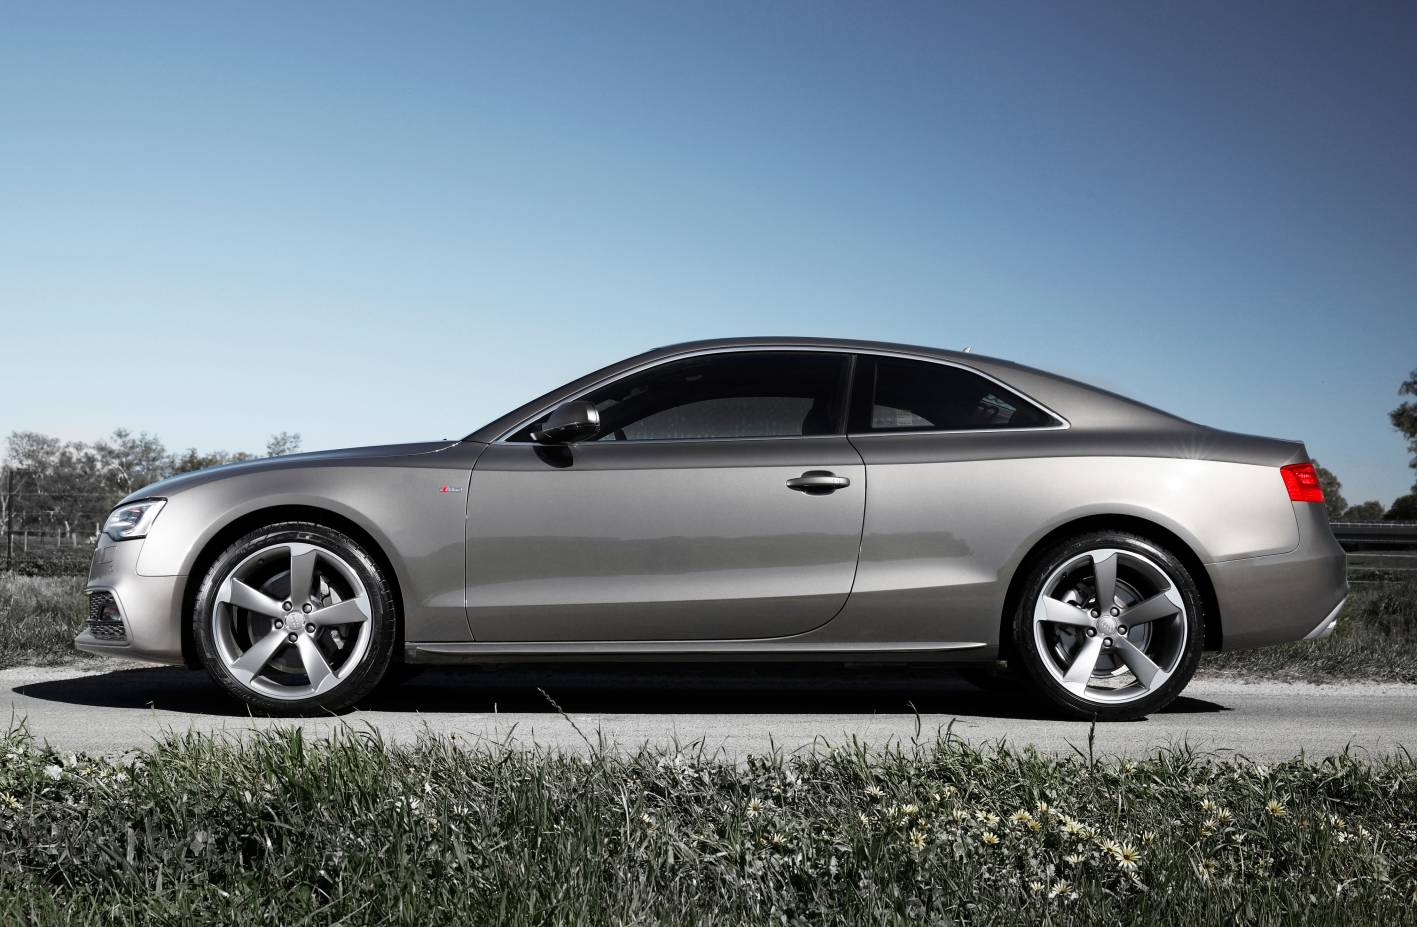 Renting Audi A5 Coupe - Renting Flexible Audi A5 Coupe